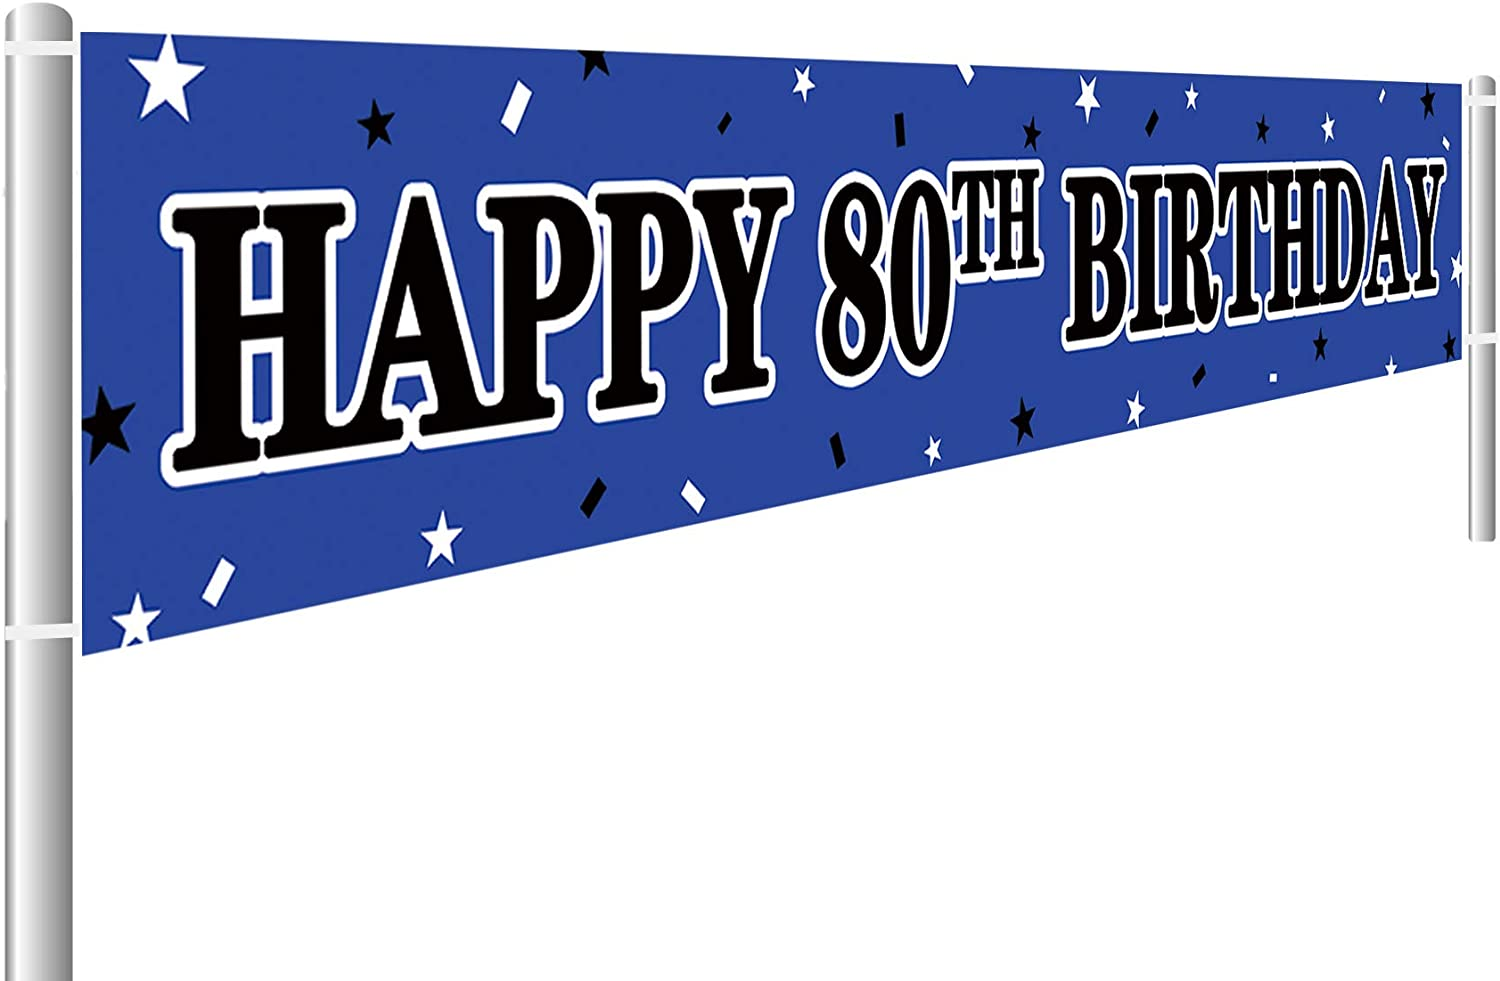 Large Blue Happy 80th Birthday Banner, 80th Birthday Party Sign, 80th Birthday Party Supplies Decorations (9.8 x 1.6 ft)